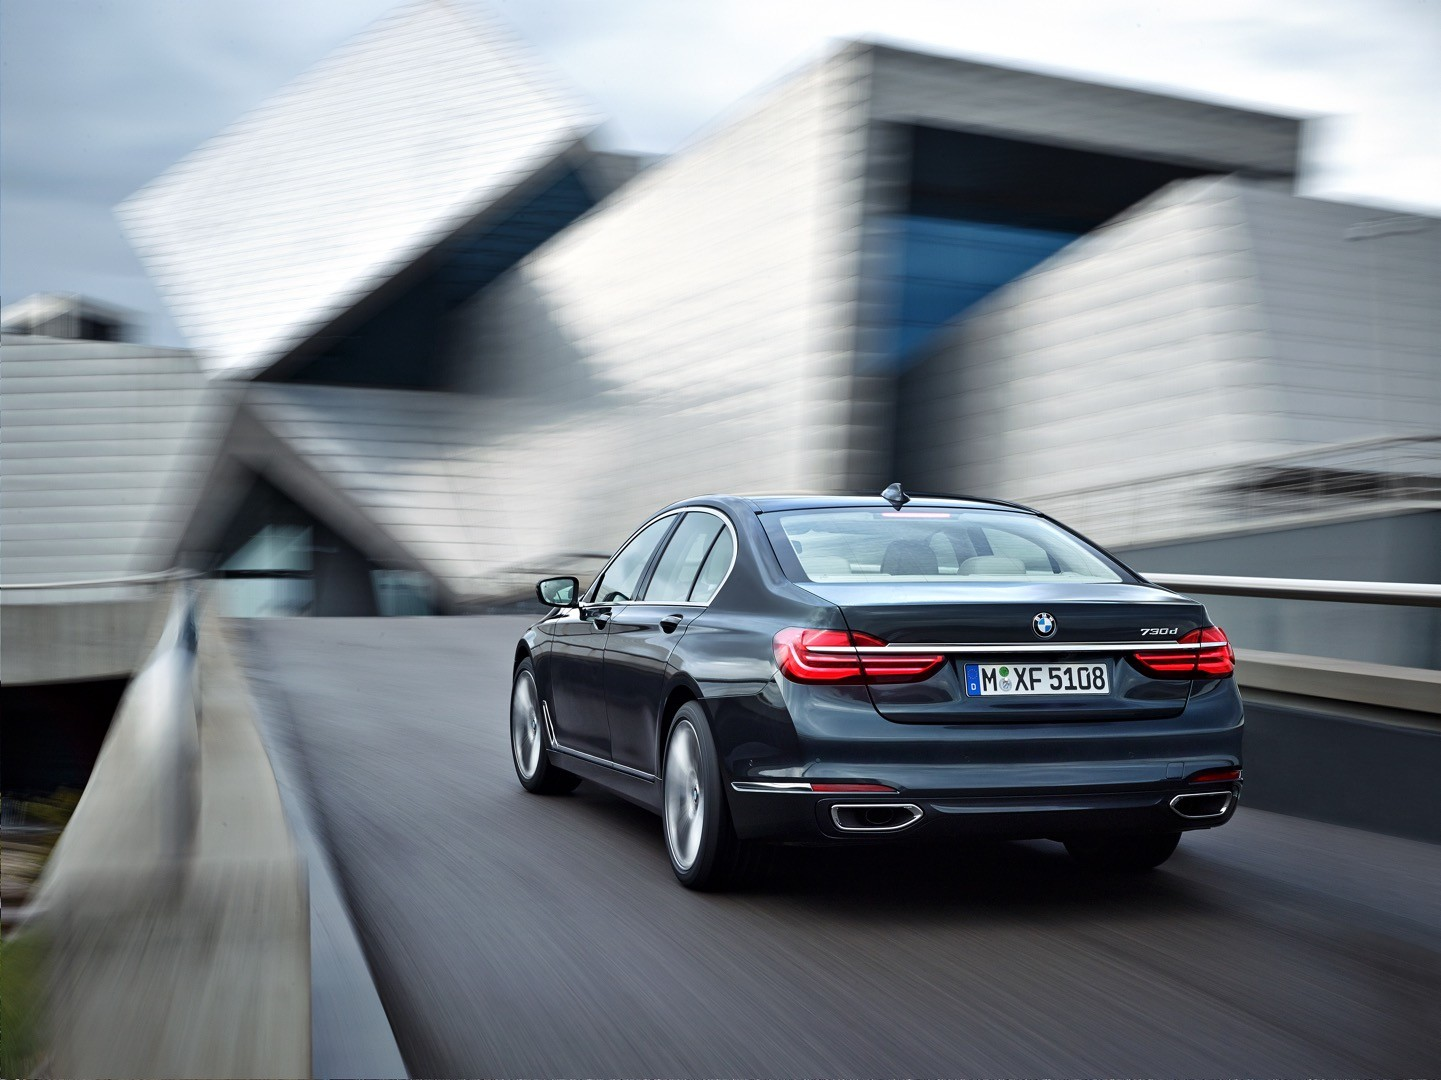 2016-bmw-7-series-finally-officially-unveiled-the-good-stuffs-inside-photo-gallery_5